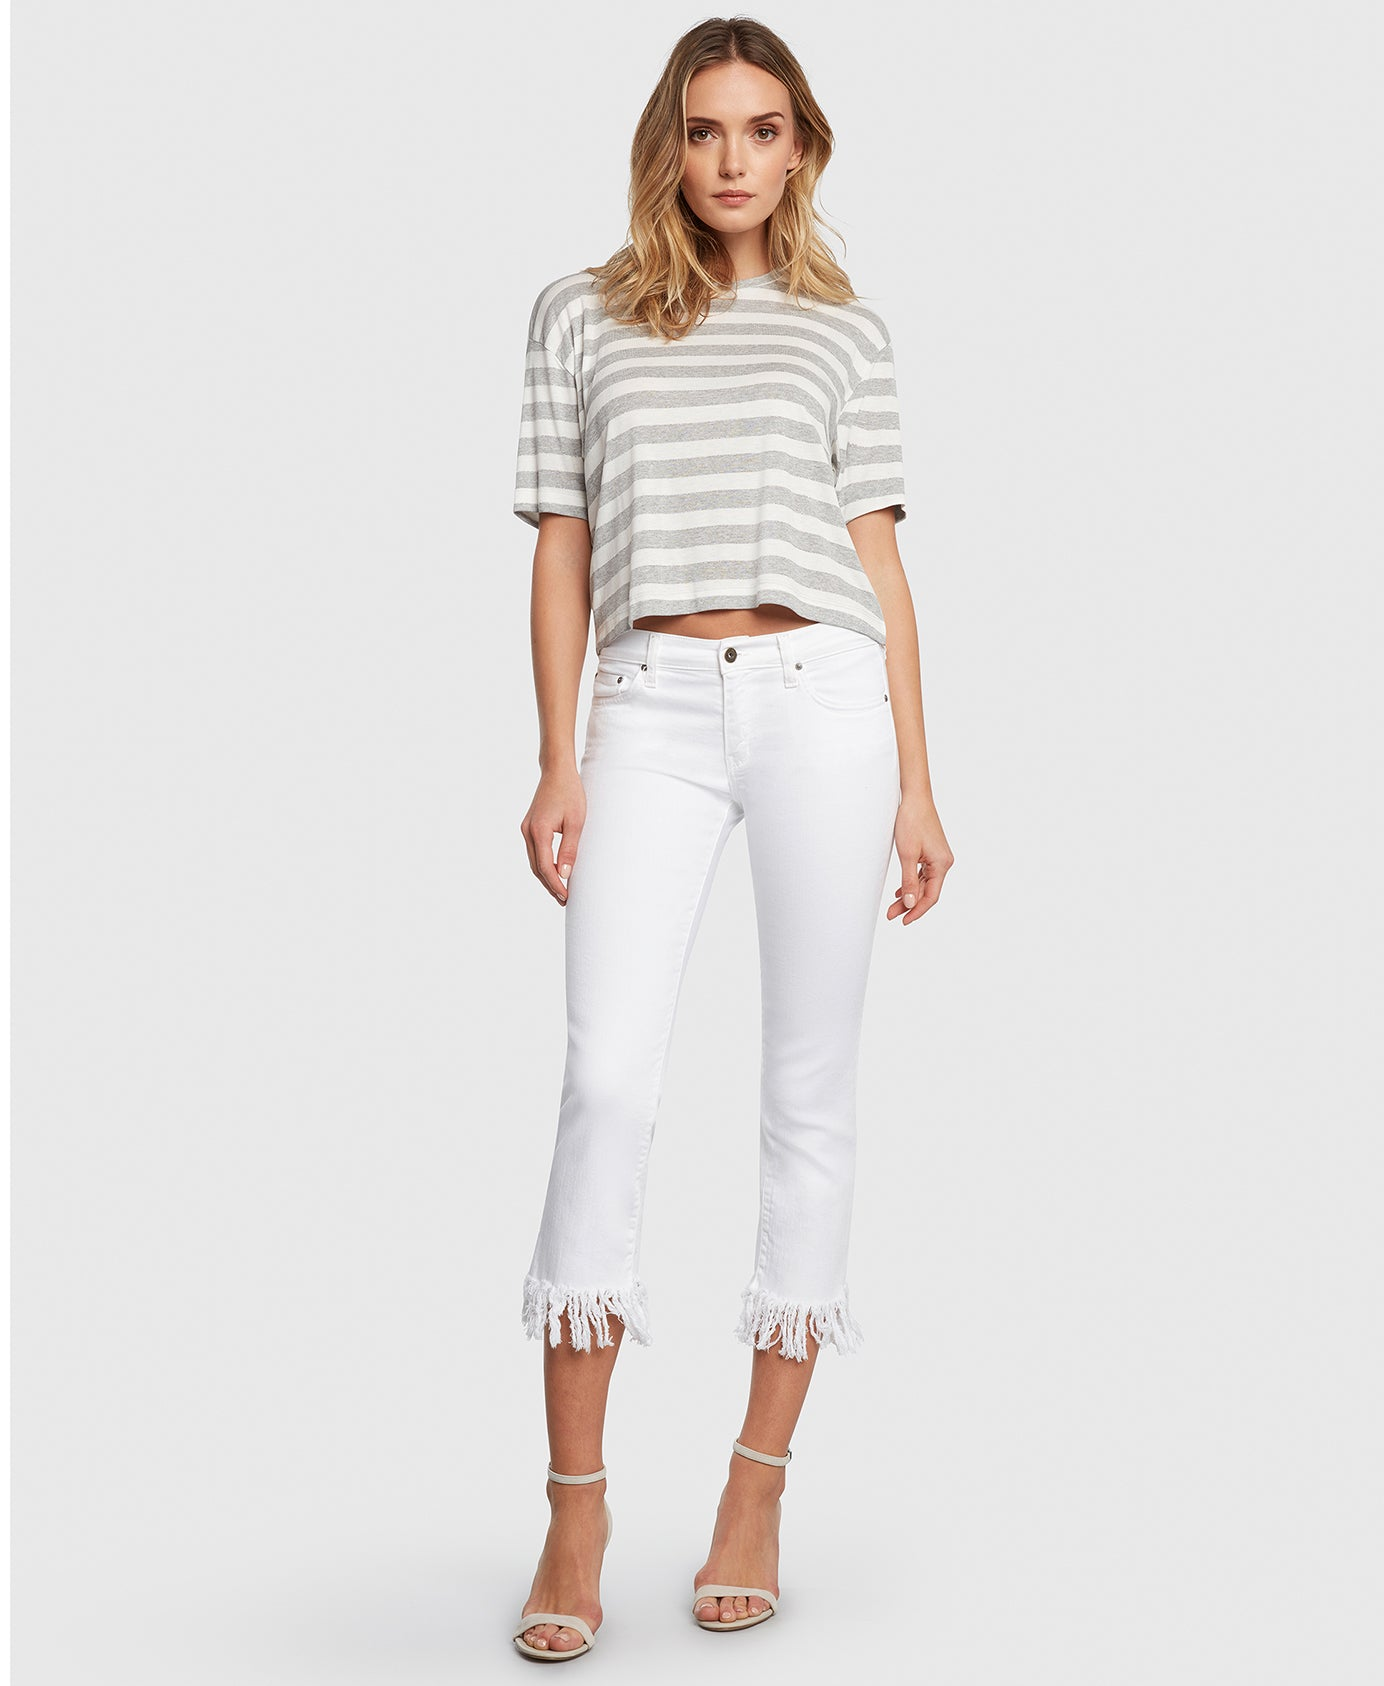 Principle mid rise OPTIMIST in Magnolia white jeans